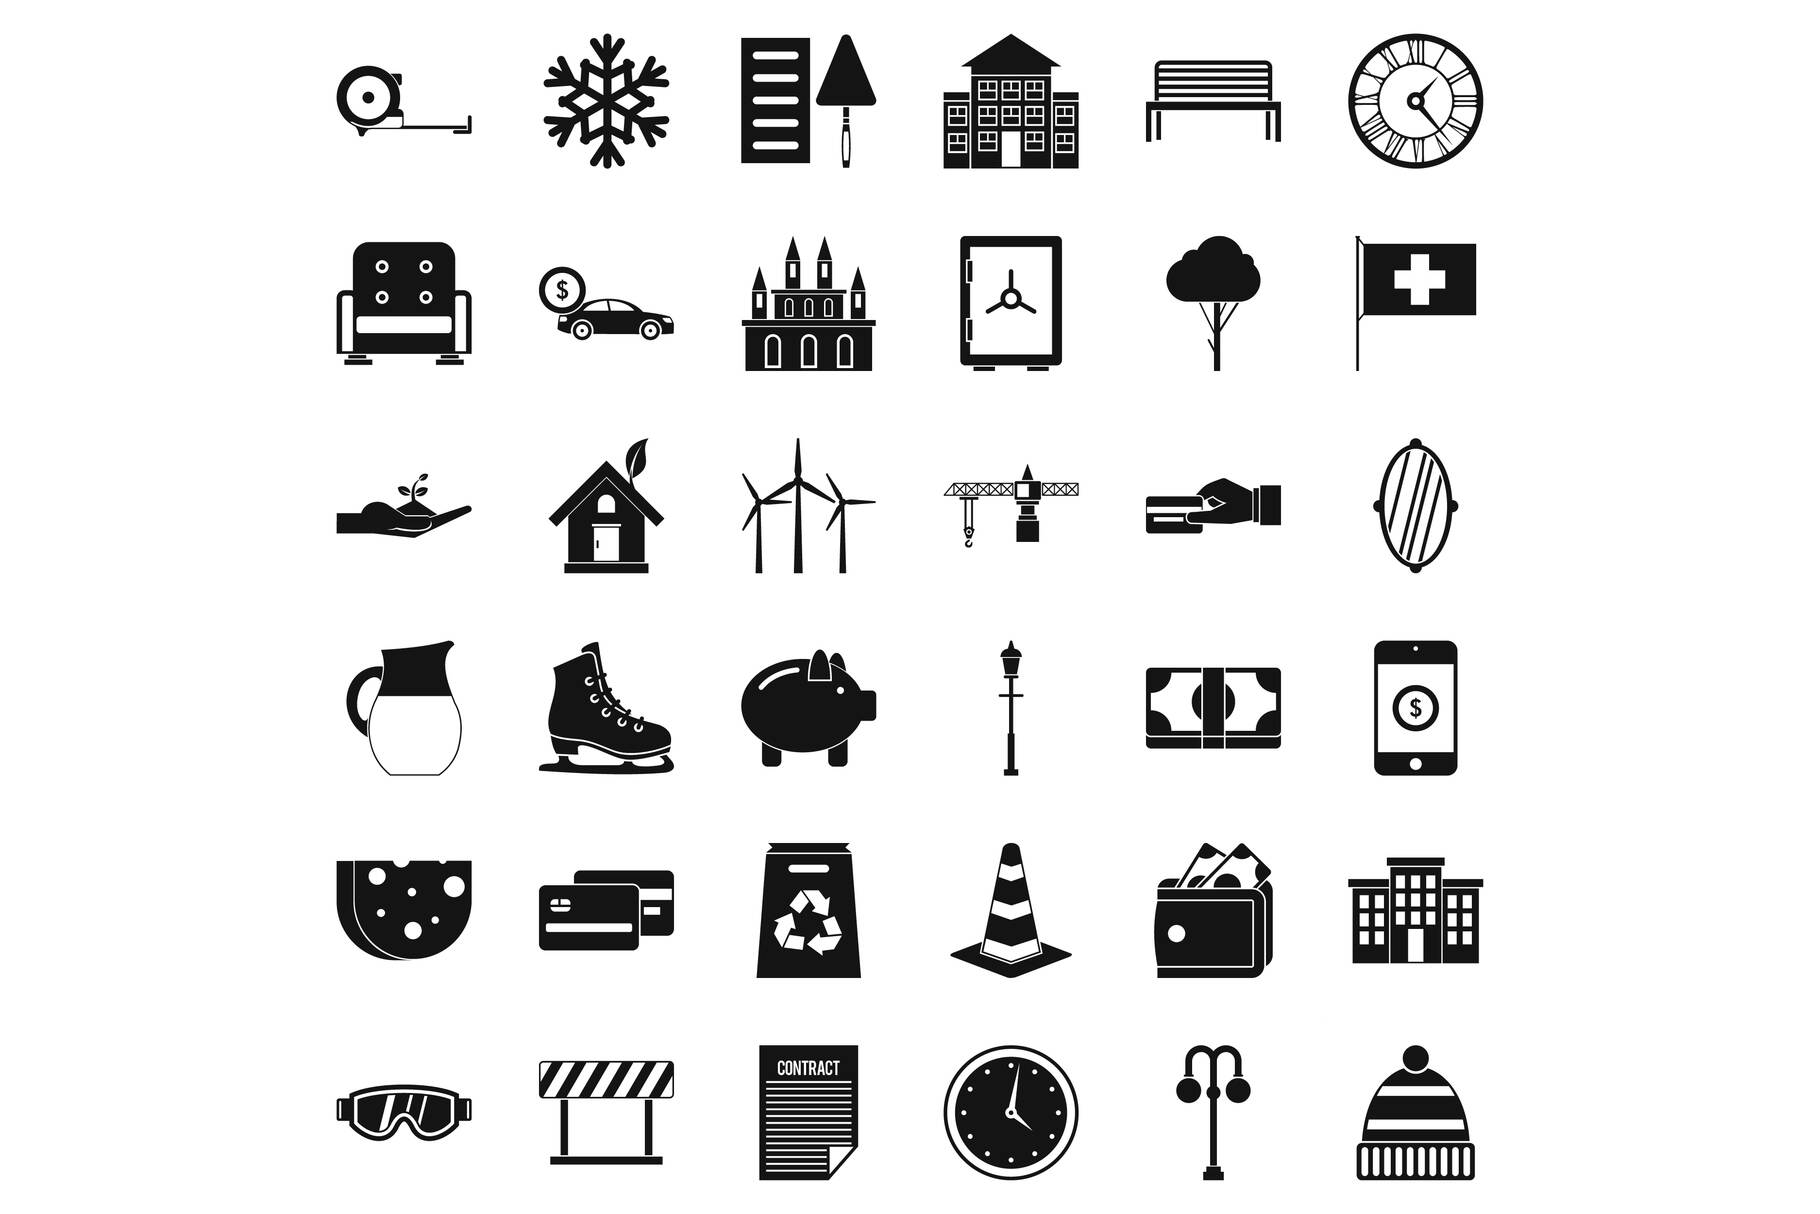 Villa for rest icons set, simple style example image 1